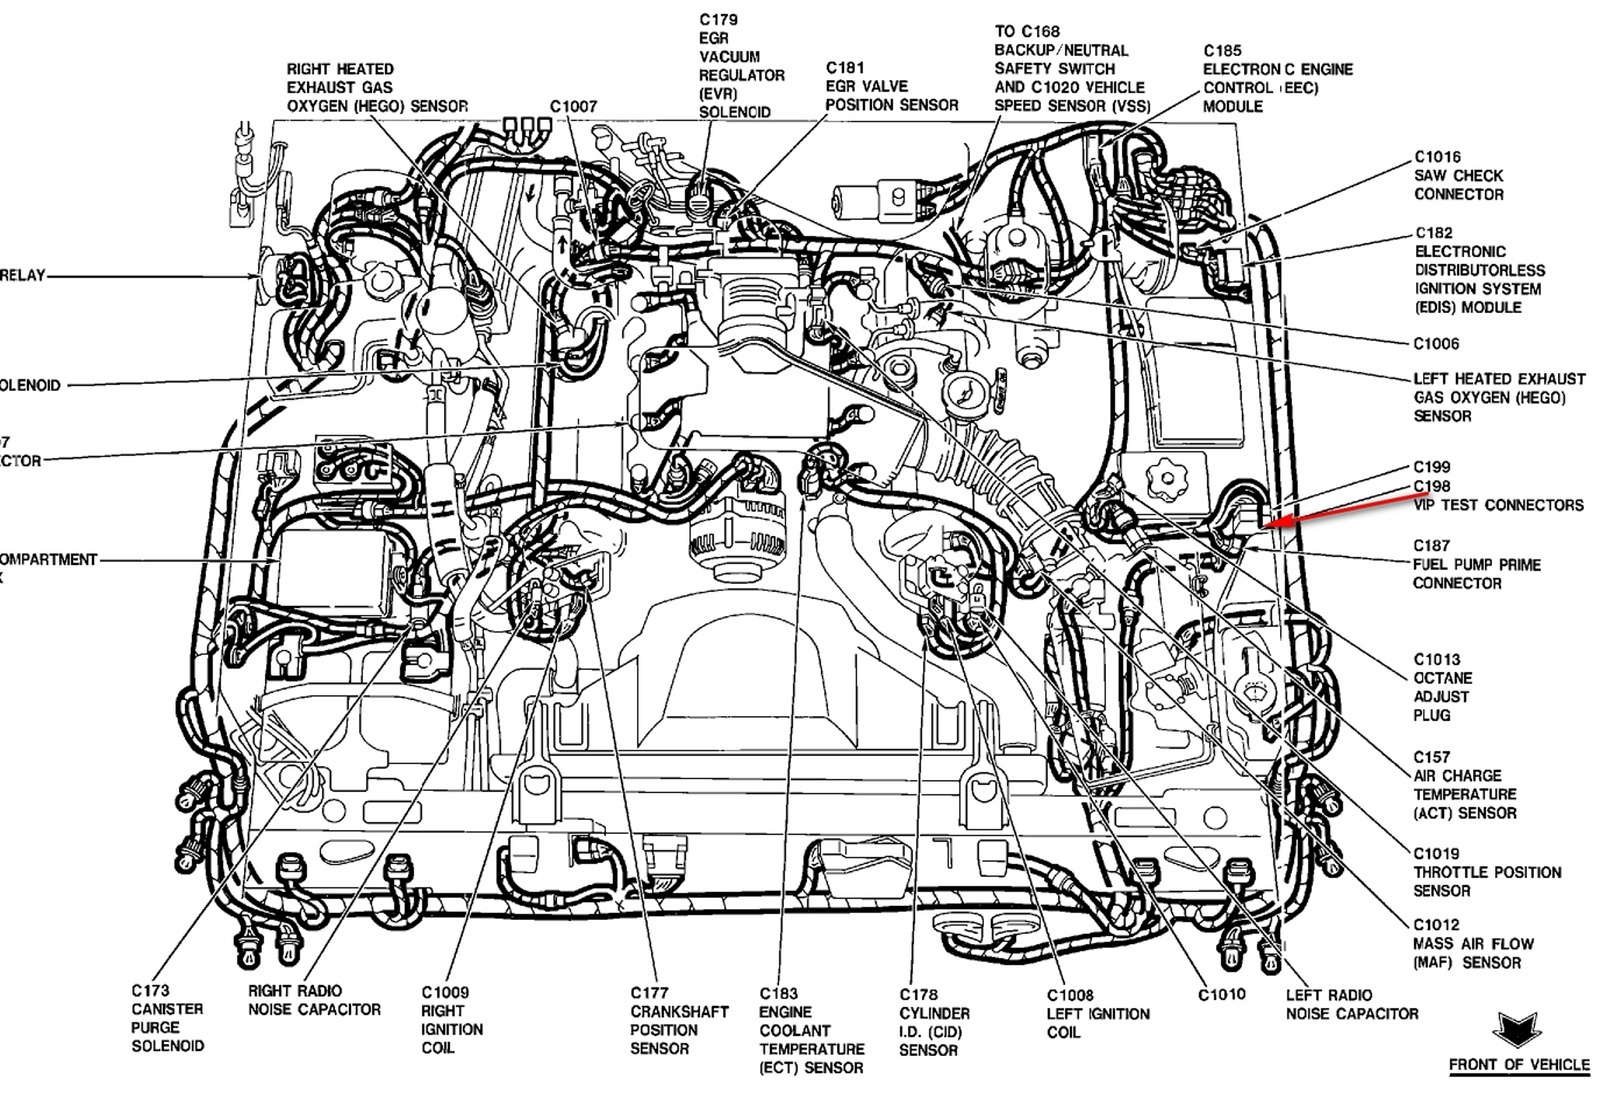 Discussion T16270 ds545905 on model a ford wiring diagram explorer questions